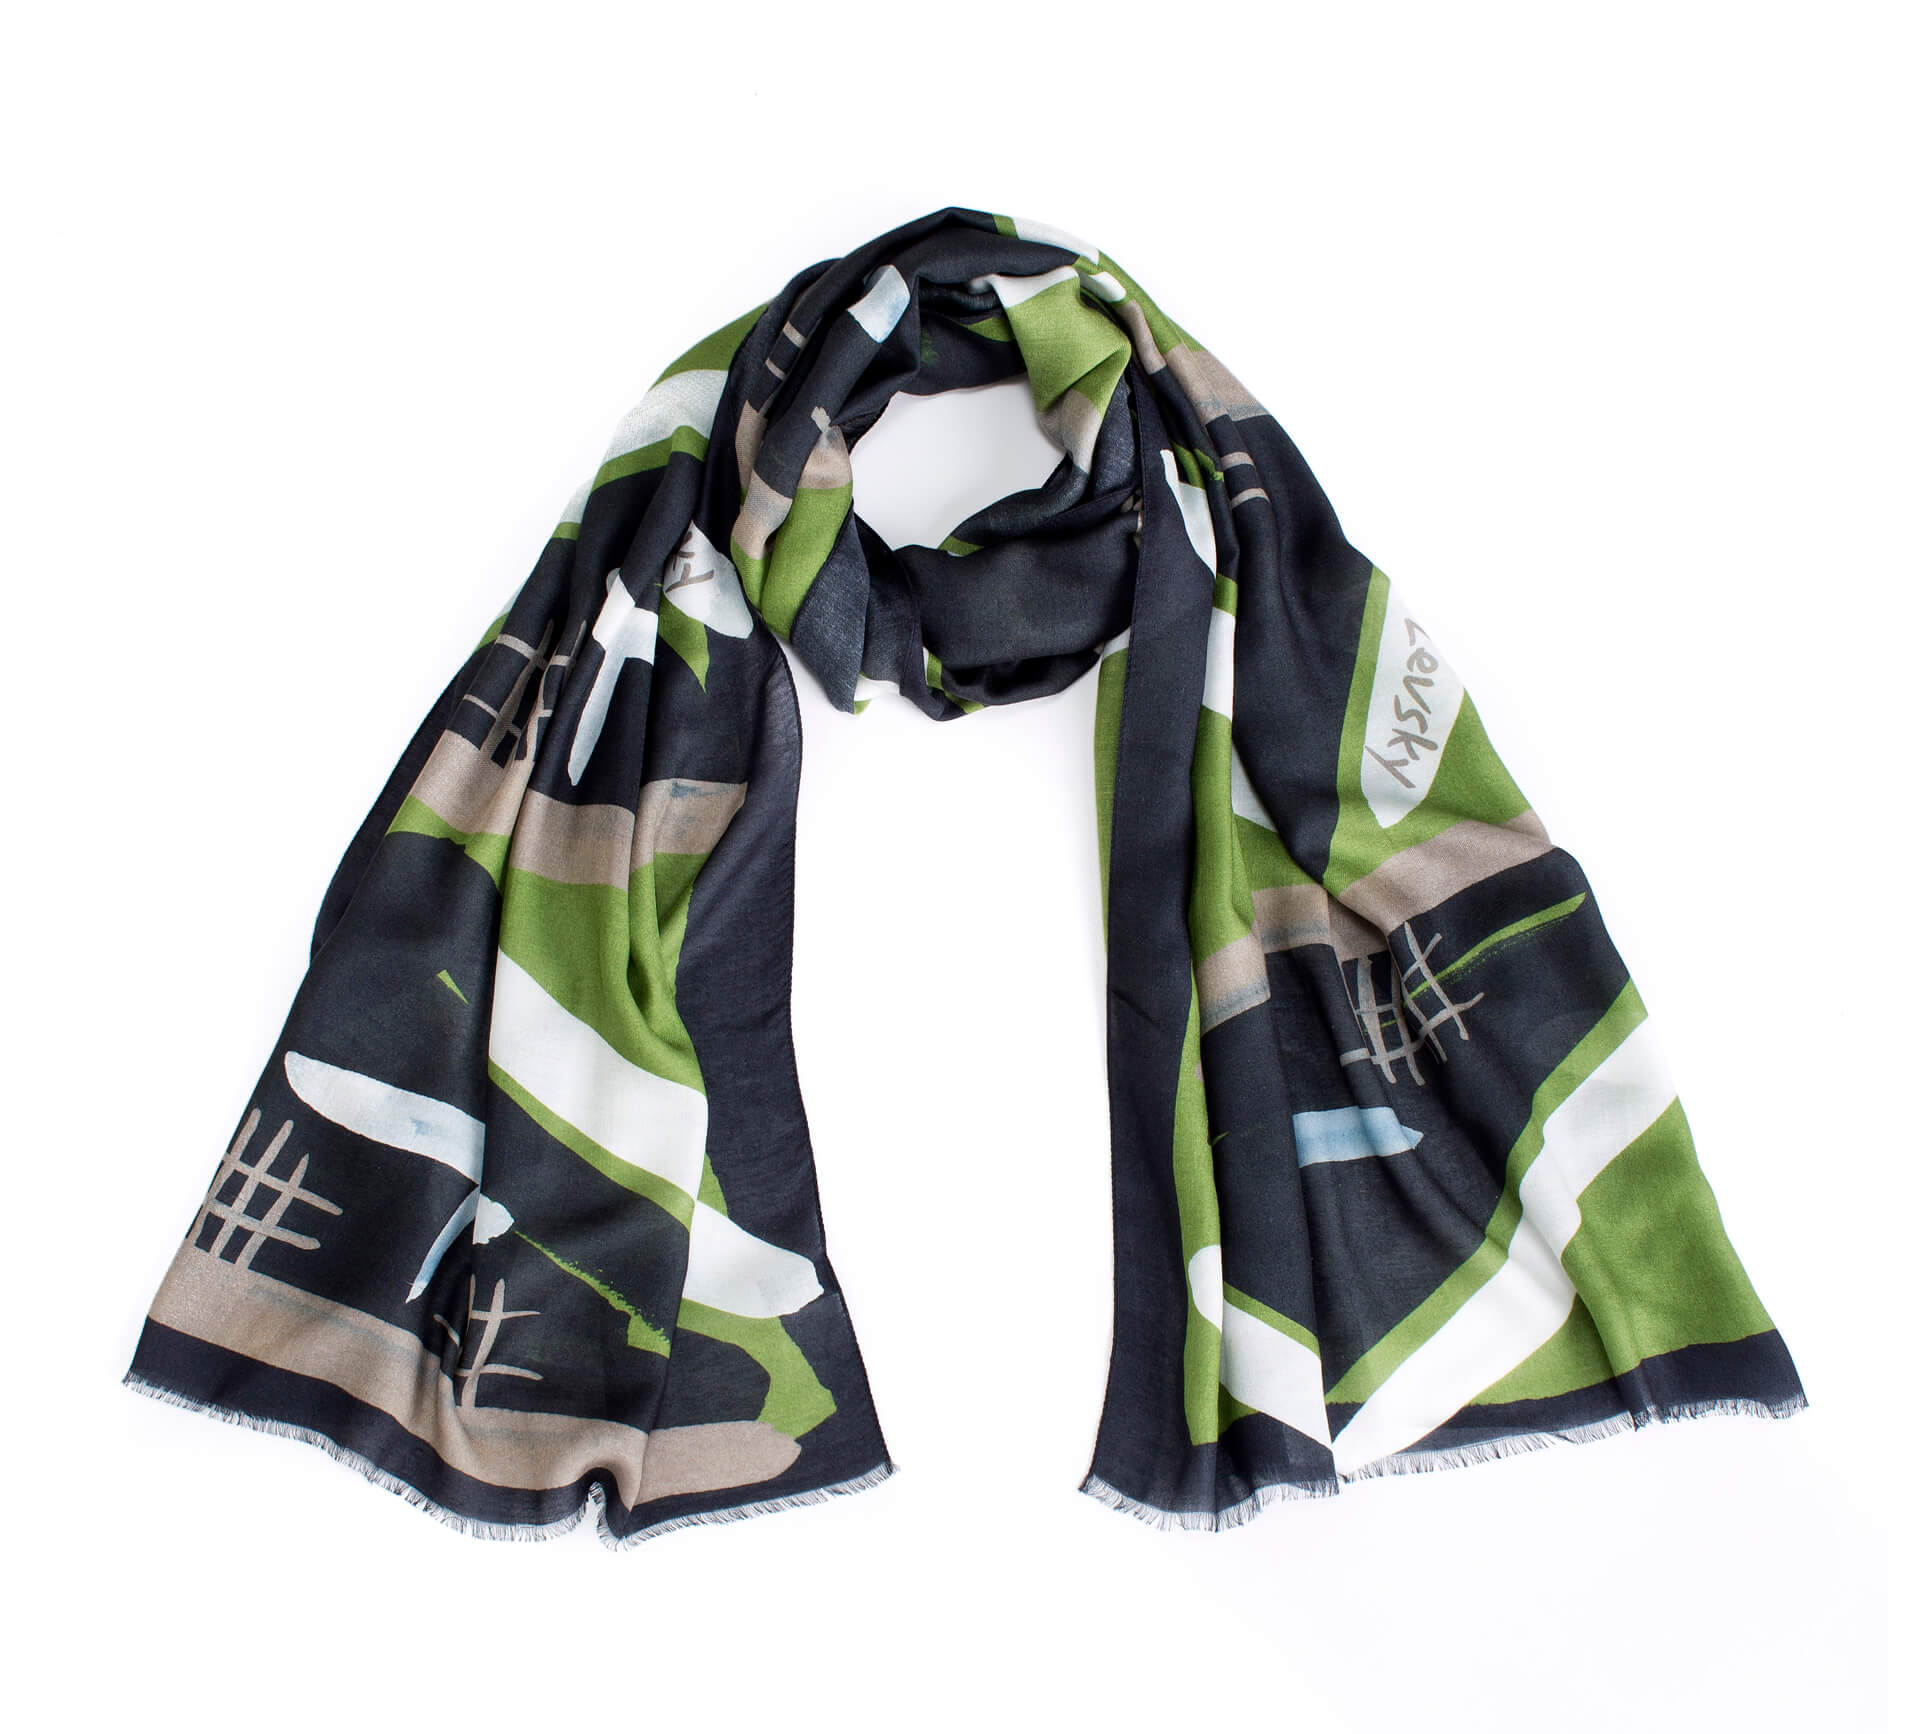 Printed shawl; Dikla Levsky; Printed Scarf; cashemer shawl; Long Scarf; olive scarf; modal and cashmere; Made In Italy; Luxury Accessories; Designer Scarf; Ethnic Scarf; Oblong shawl; light airy scarf; olive and black; gift for her, luxury fashion